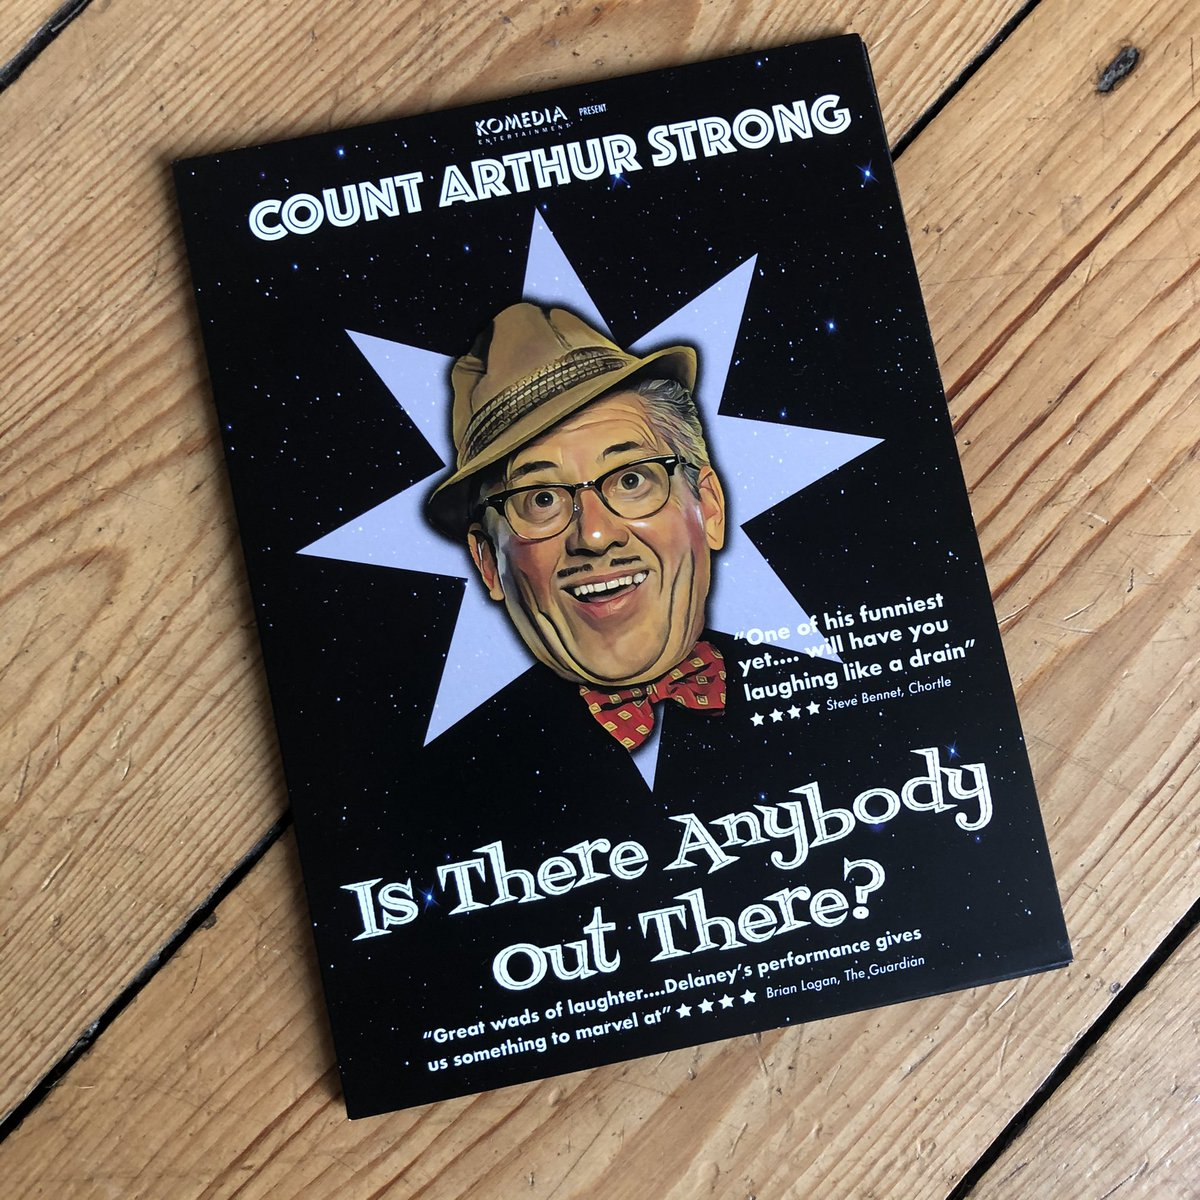 Thoroughly recommend the best live comedy DVD released in 2020* @Arthur_Strong Is There Anybody Out there is a laugh a minute from finish to start (you'll get that if you get it) It will cheer you up this lockdown.#comedy #fun #SaturdayMotivation *that's right isn't it @chortle?